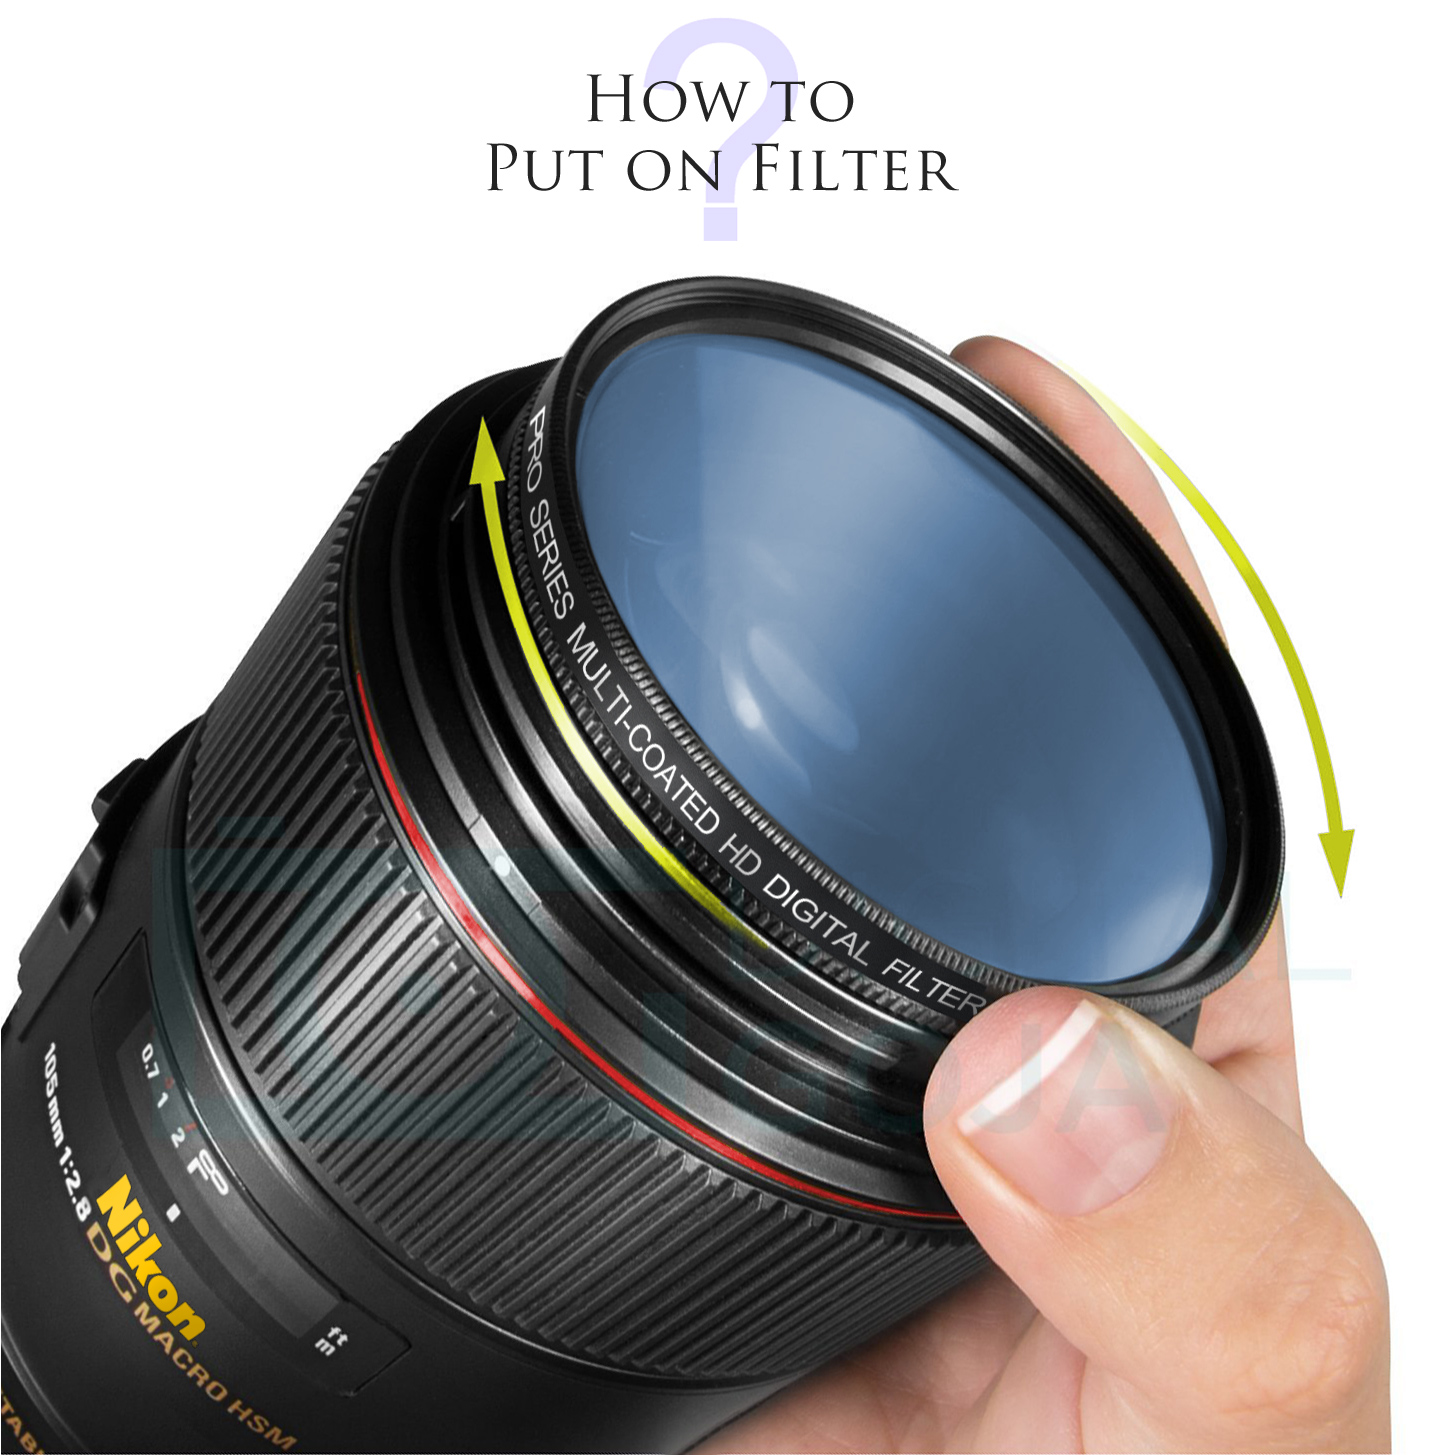 55mm Pro Series High Resolution Circular Polarized Filter & an eCostConnection Microfiber Cloth - image 4 of 5